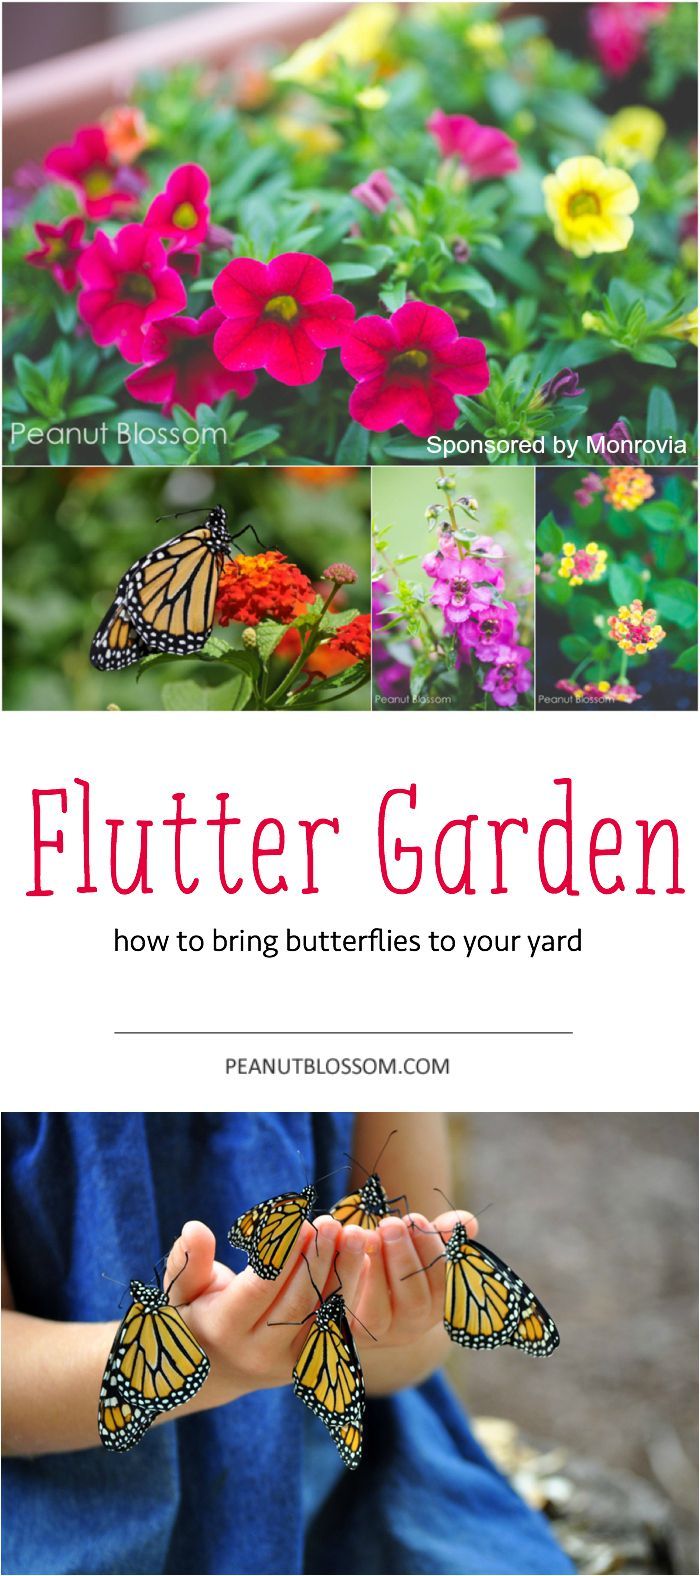 The perfect summer project to do with your kids: Plant a butterfly garden! Love this list of all the supplies and plants you need to attract them to your yard. My kids are going to flip!